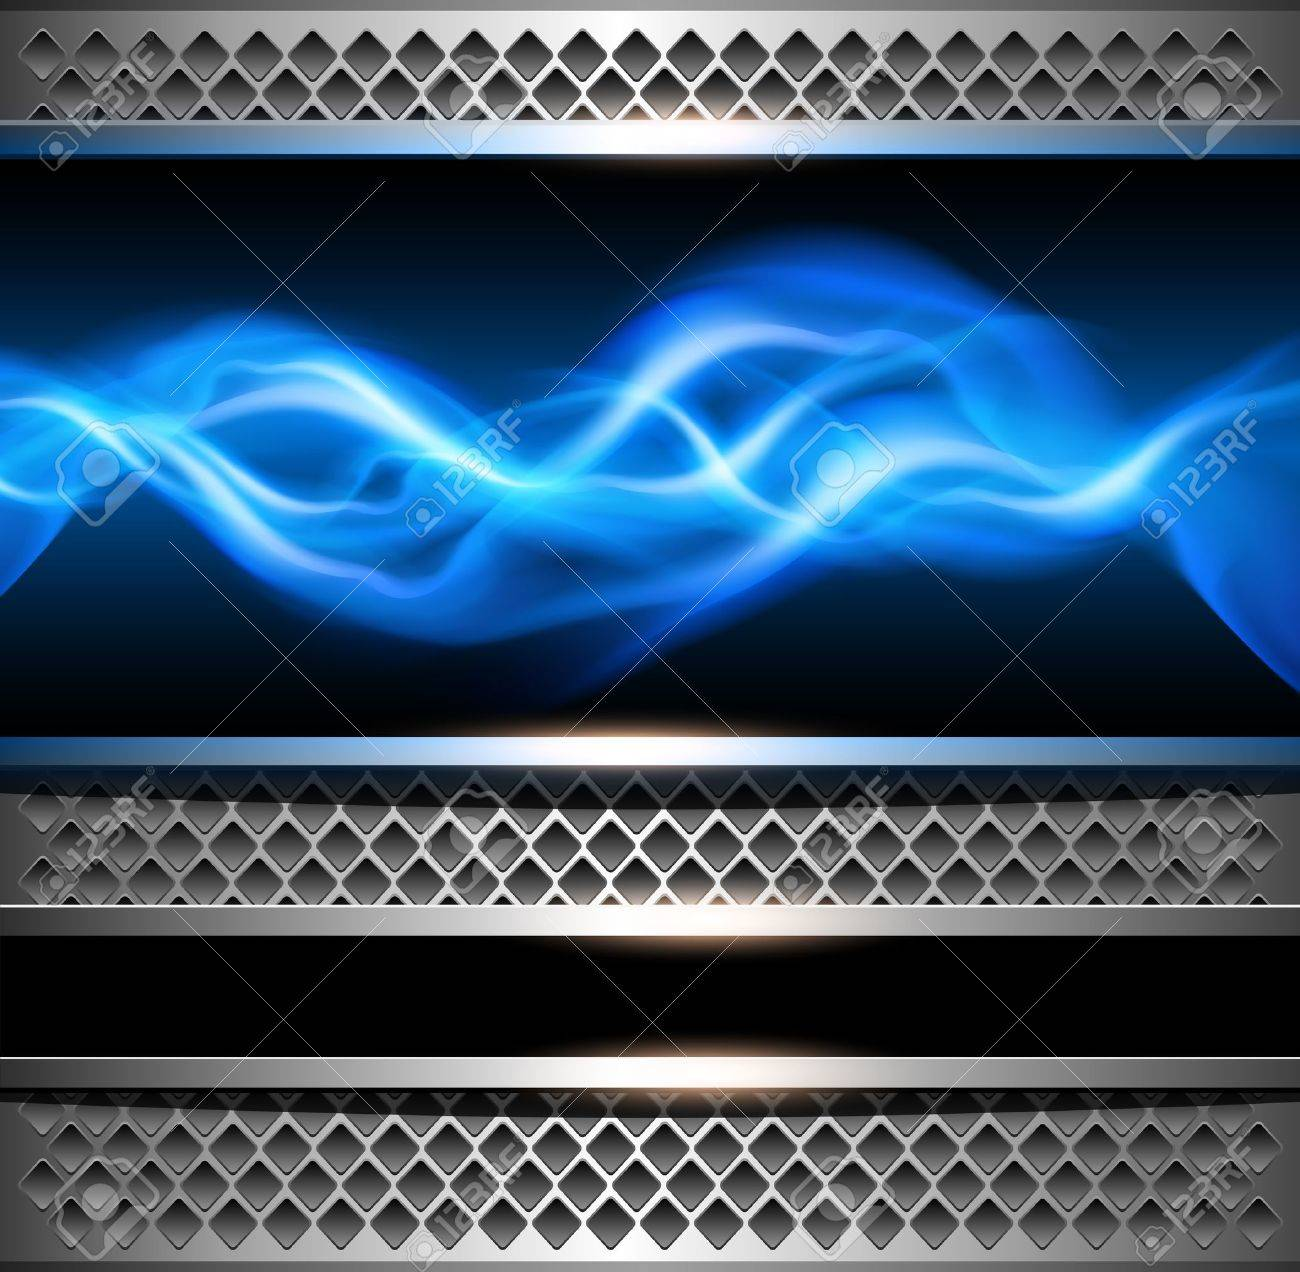 Abstract background, metallic with power concept. Stock Vector - 19375822